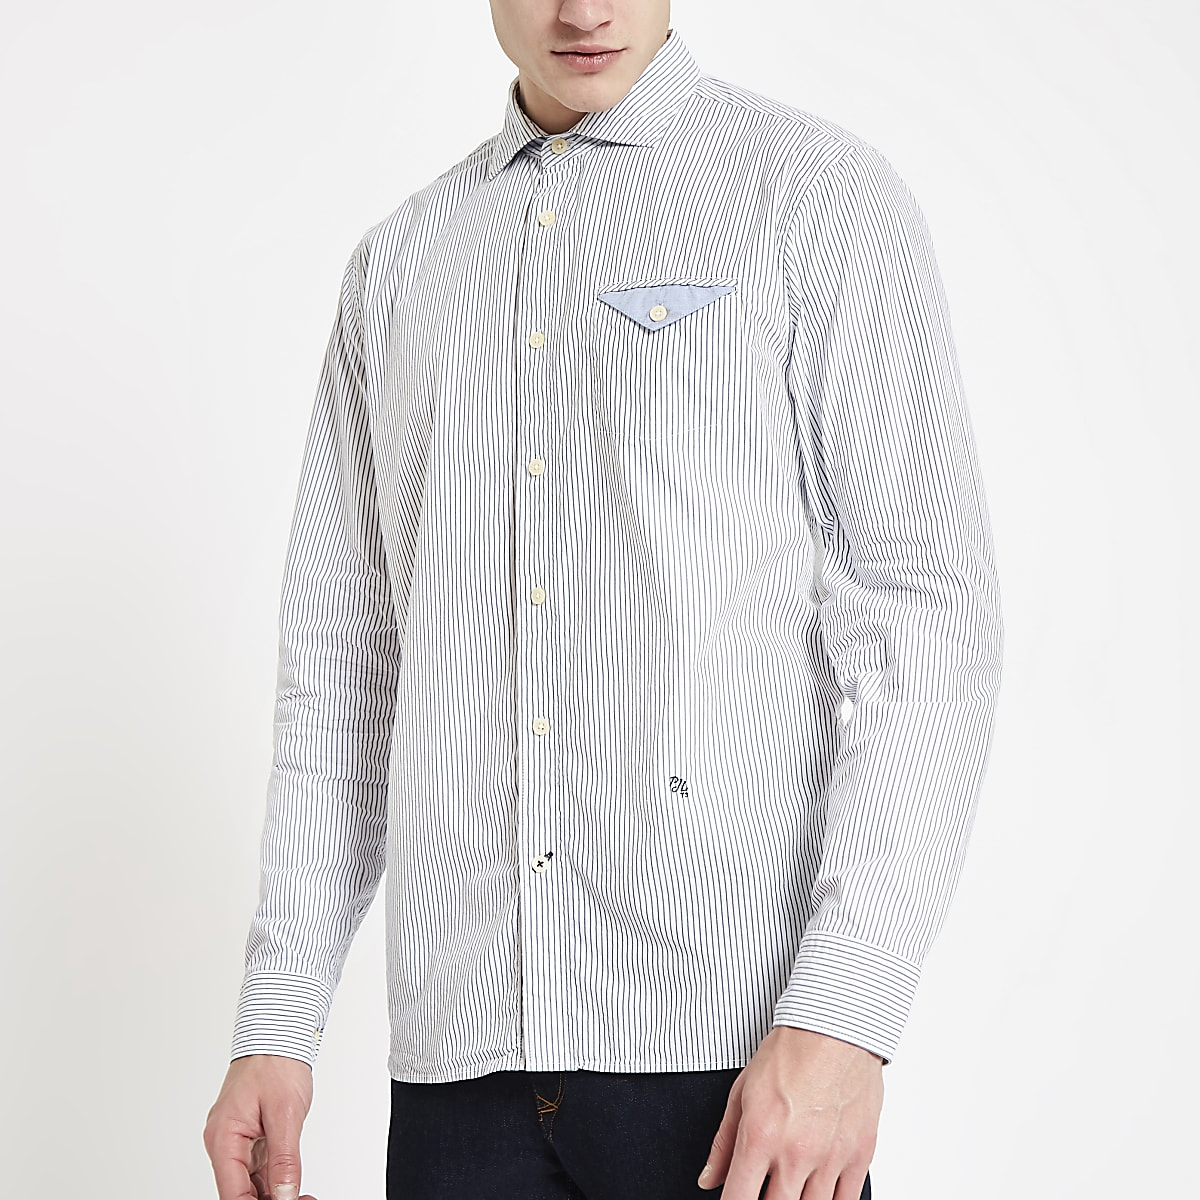 Pepe Jeans blue stripe long sleeve shirt